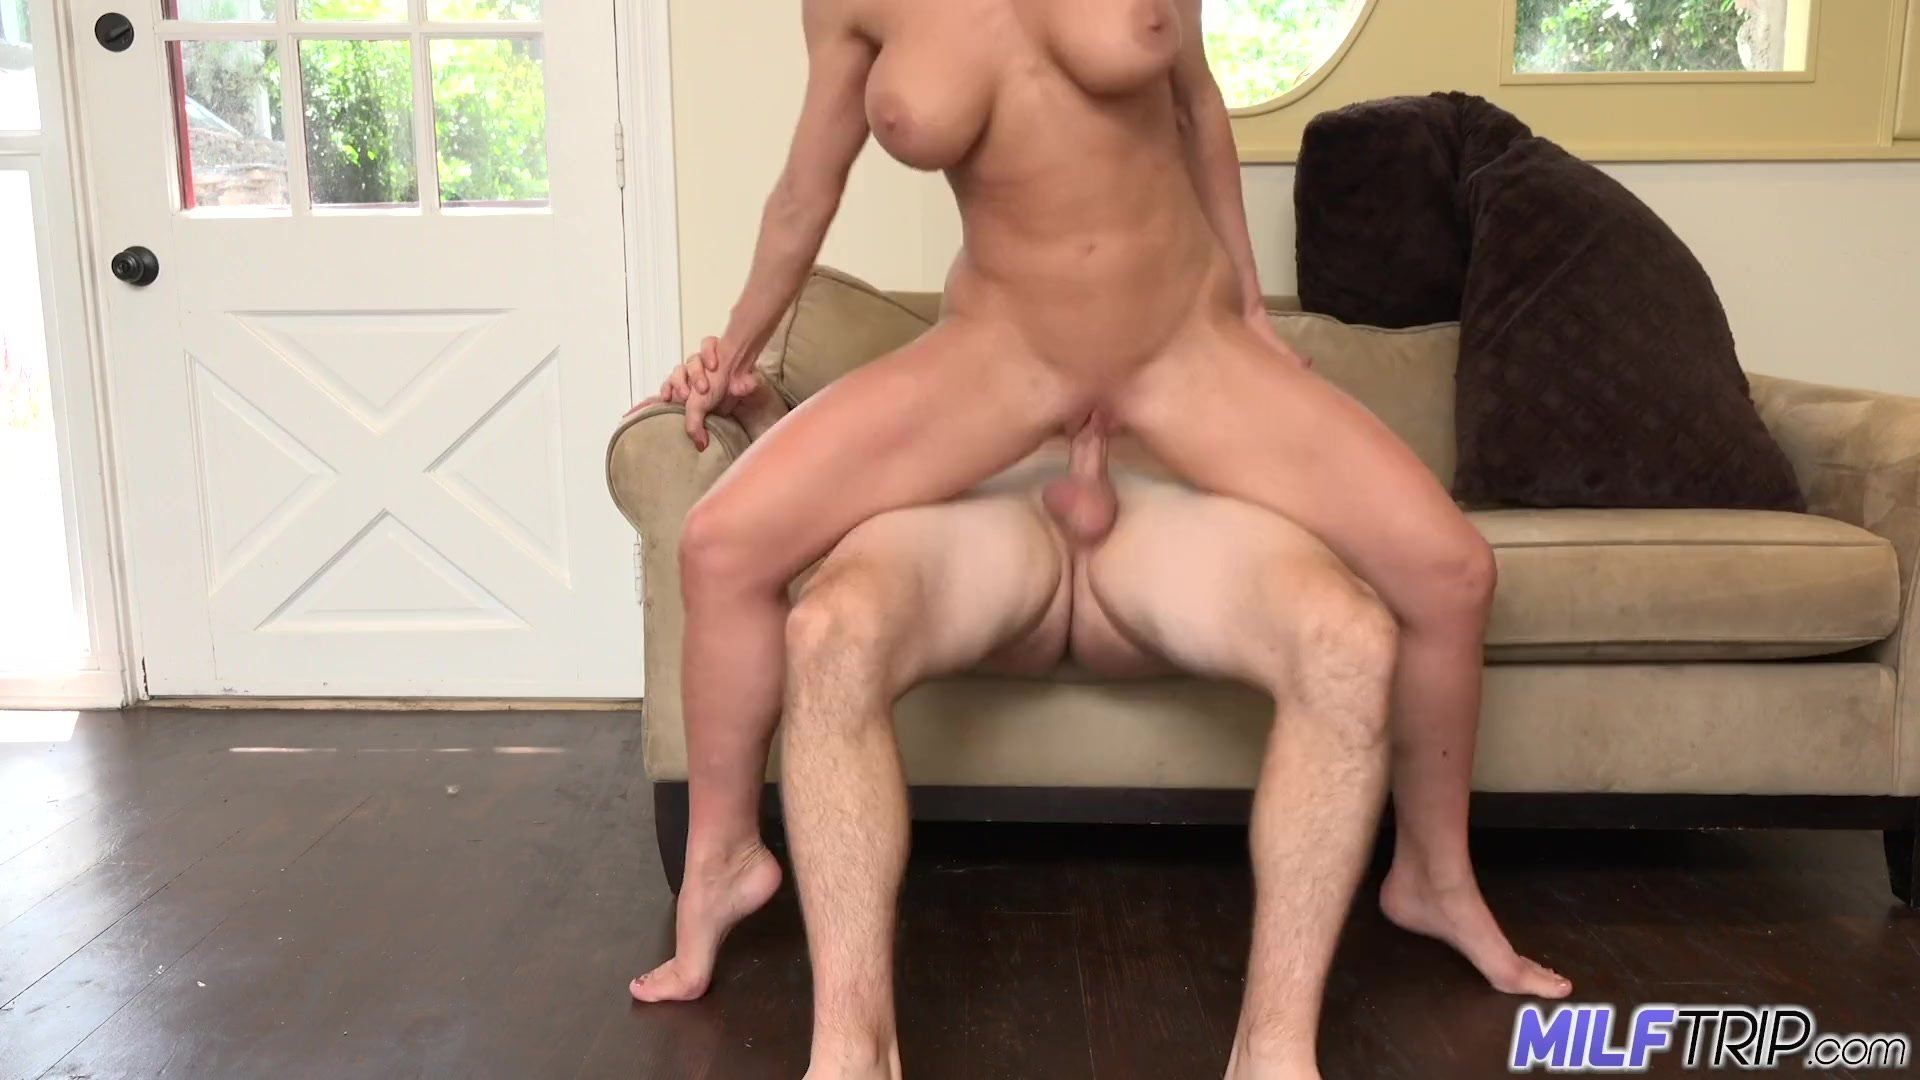 Mother/butt/the loves milf absolutely